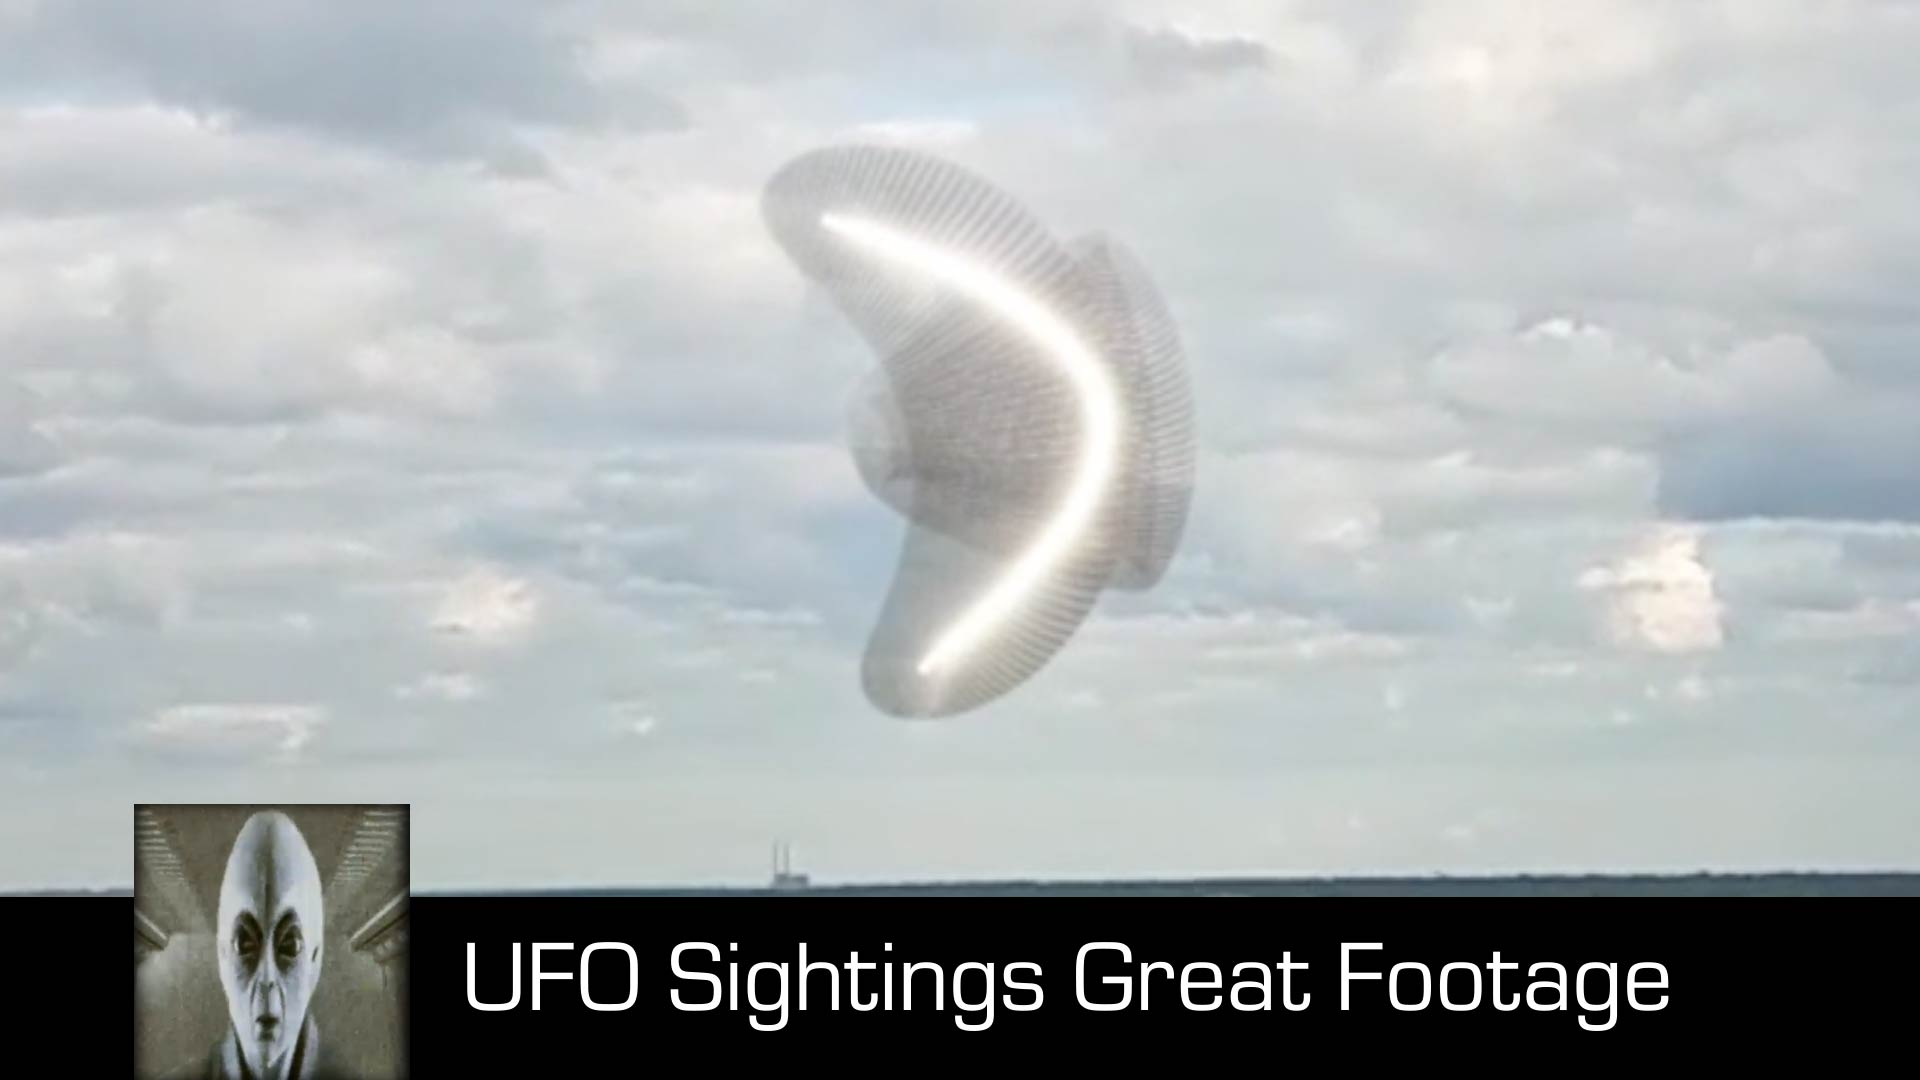 UFO Sightings Great Footage June 2nd 2018